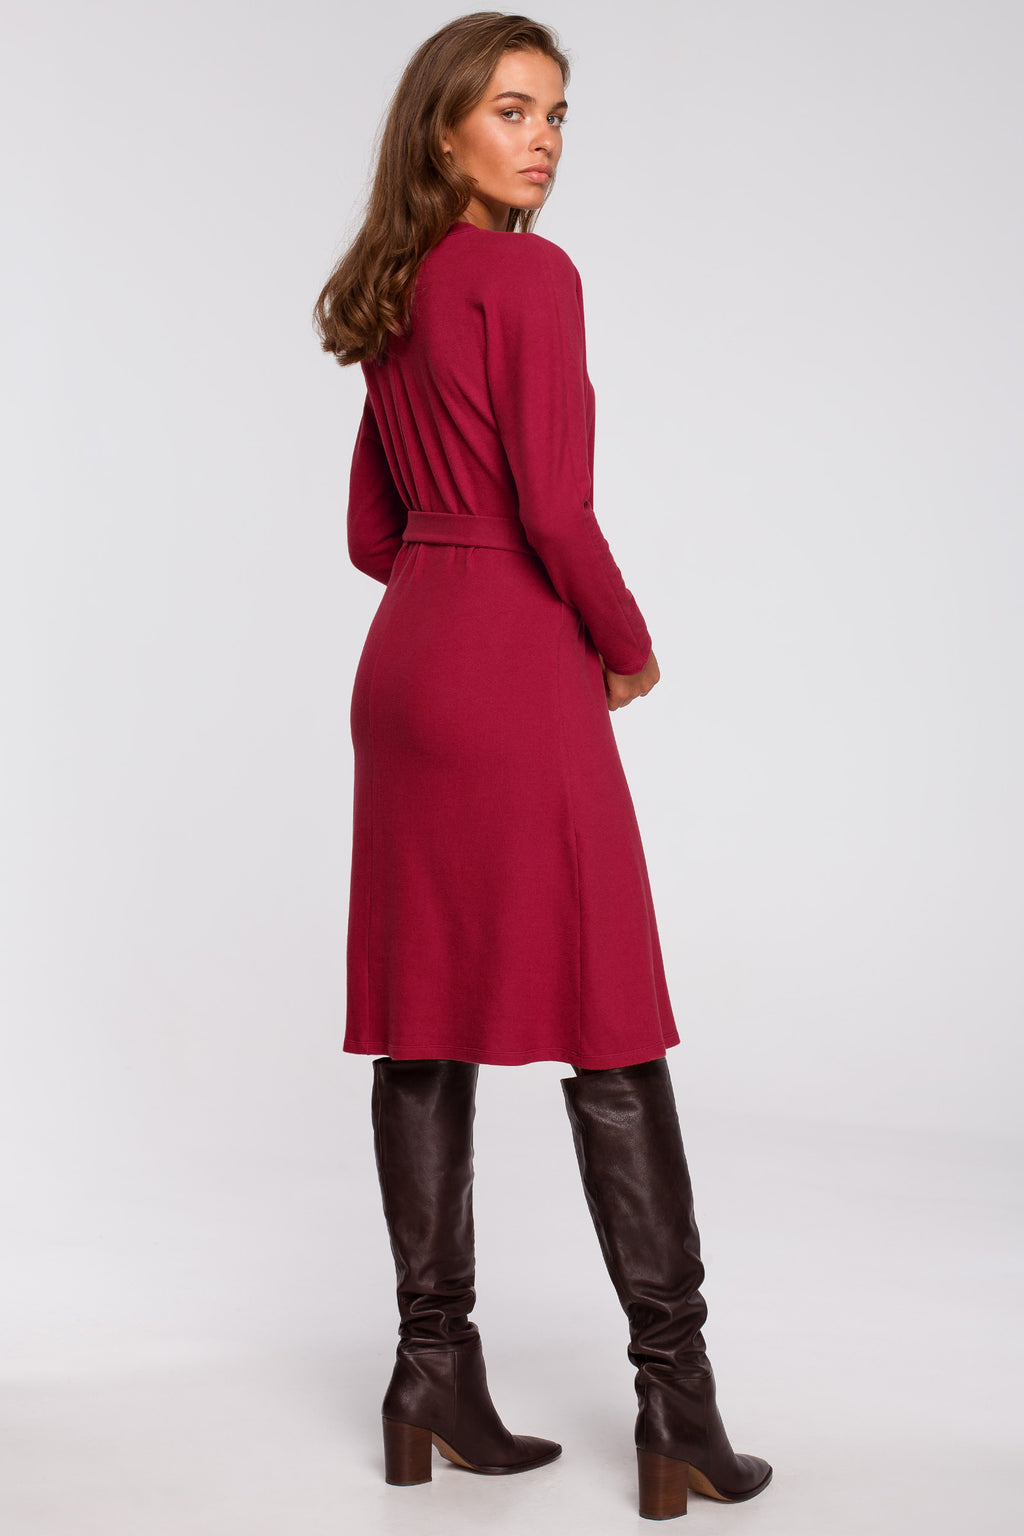 Cherry Red A Line Viscose Dress With A Belt - So Chic Boutique